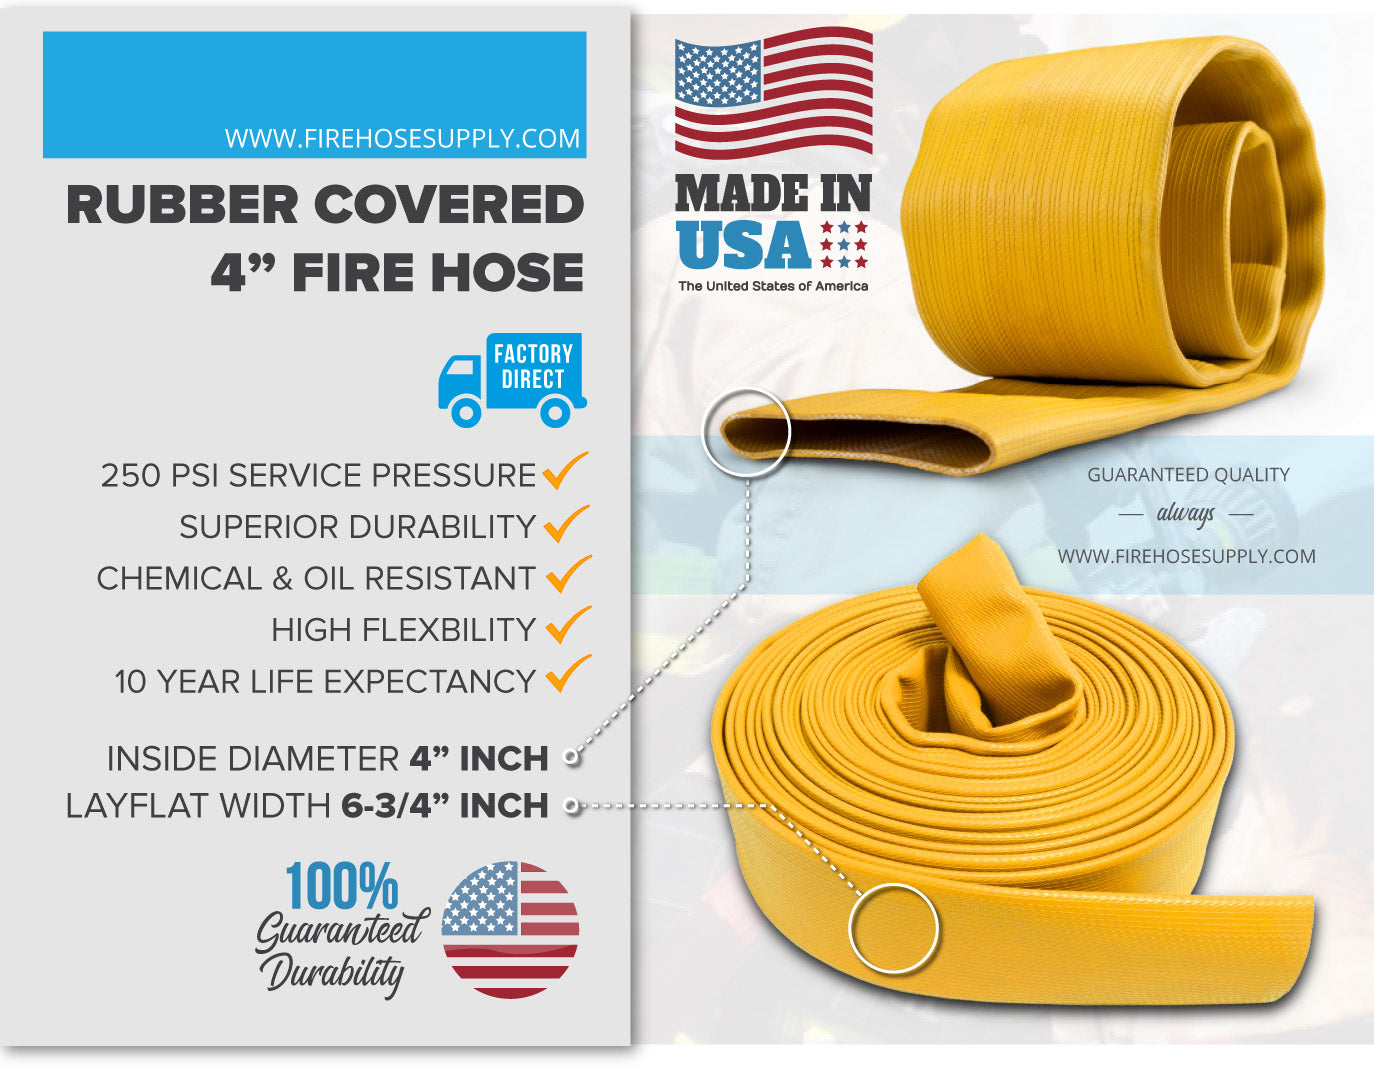 4 Inch Rubber Fire Hose Material Yellow No Fittings 250 PSI LDH